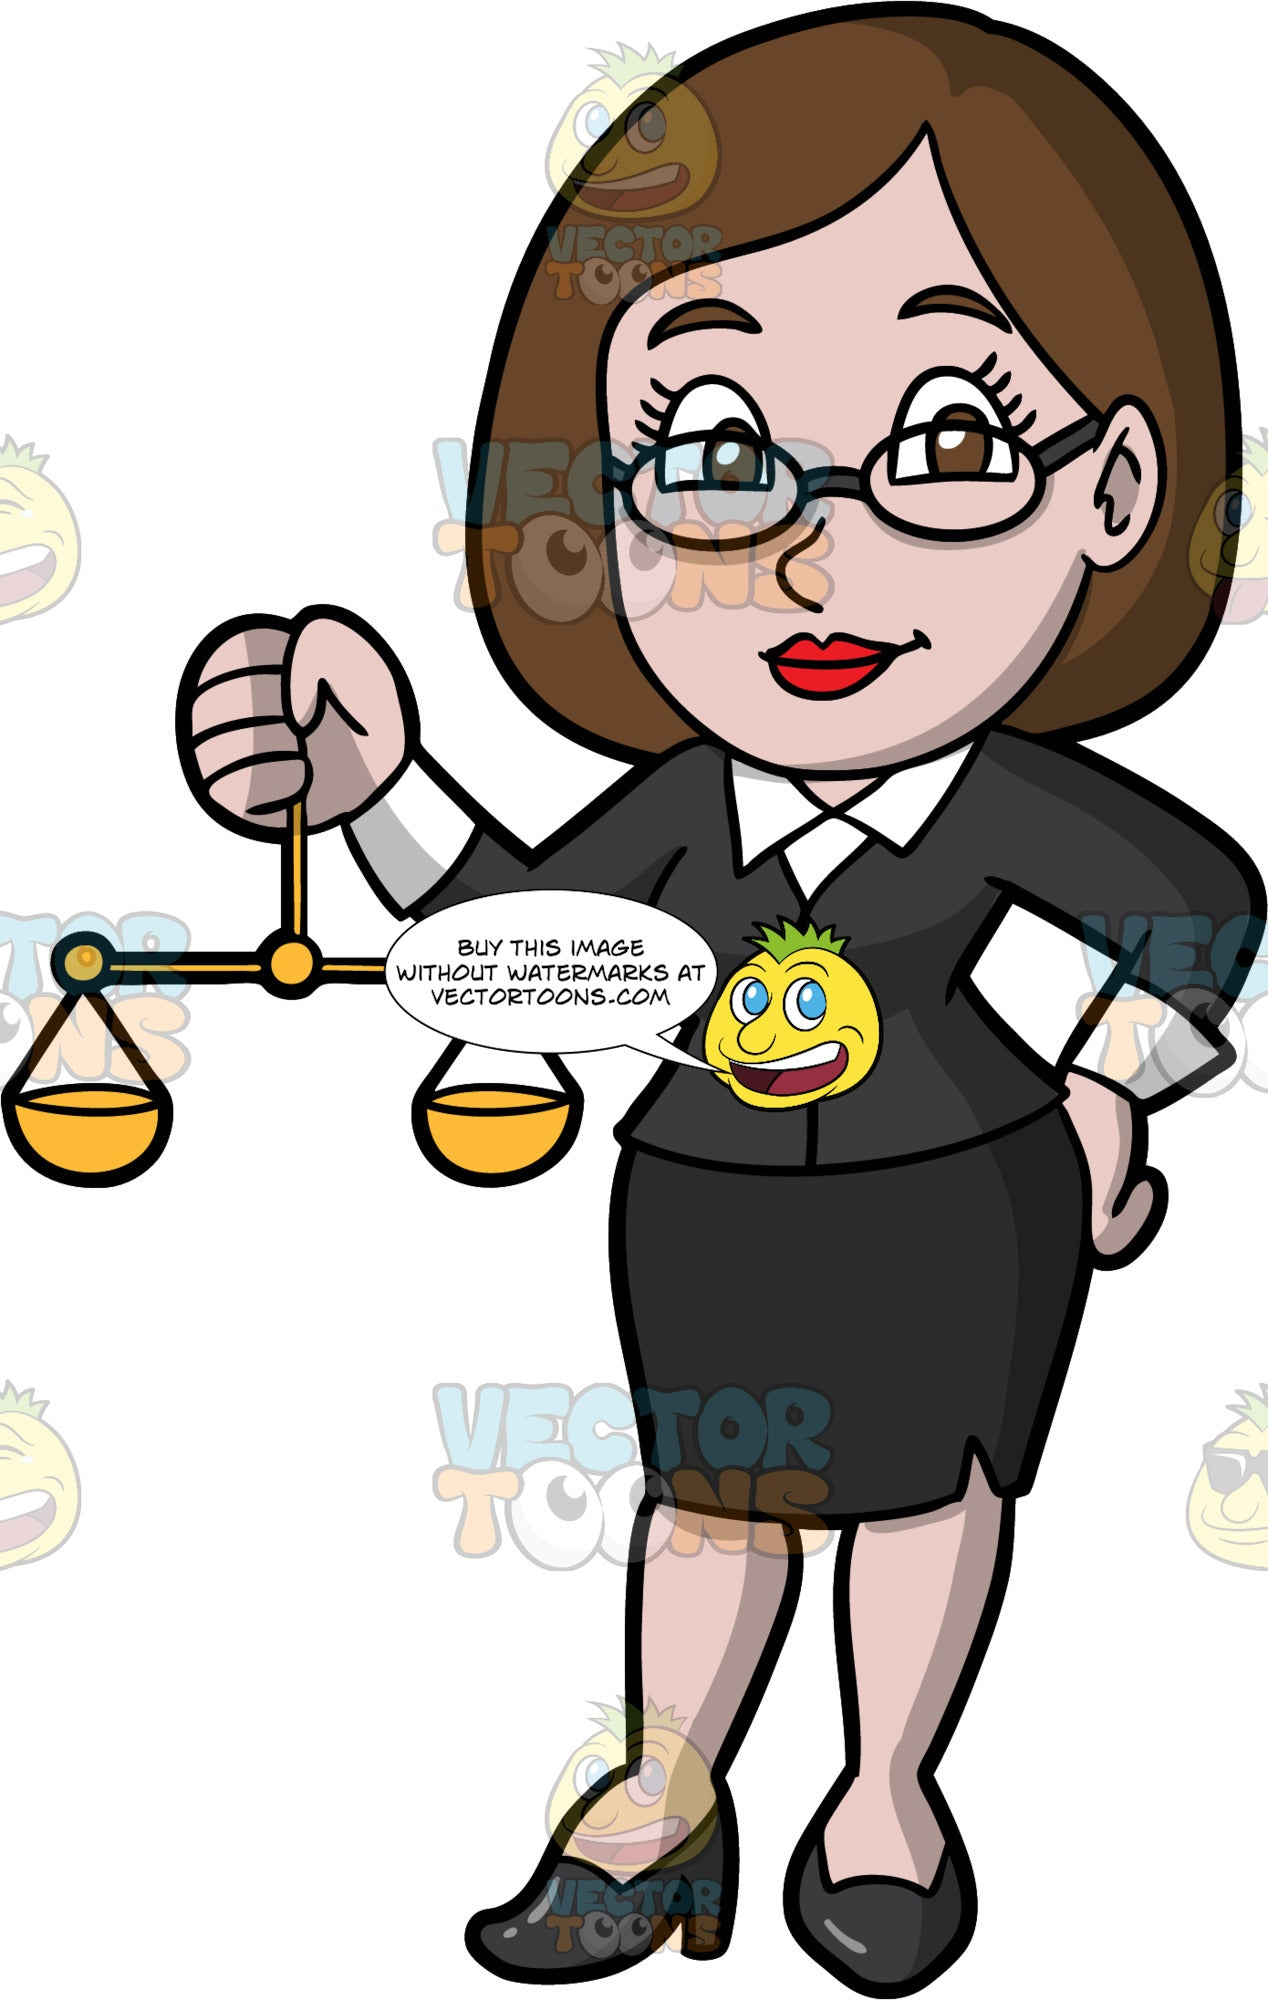 A Female Lawyer Holding Scales Of Justice. A woman with brown hair and eyes, wearing a black skirt, black blazer over a white collared shirt, black shoes, and eyeglasses, holding a set of scales of justice in one hand while she places her other hand on her hip